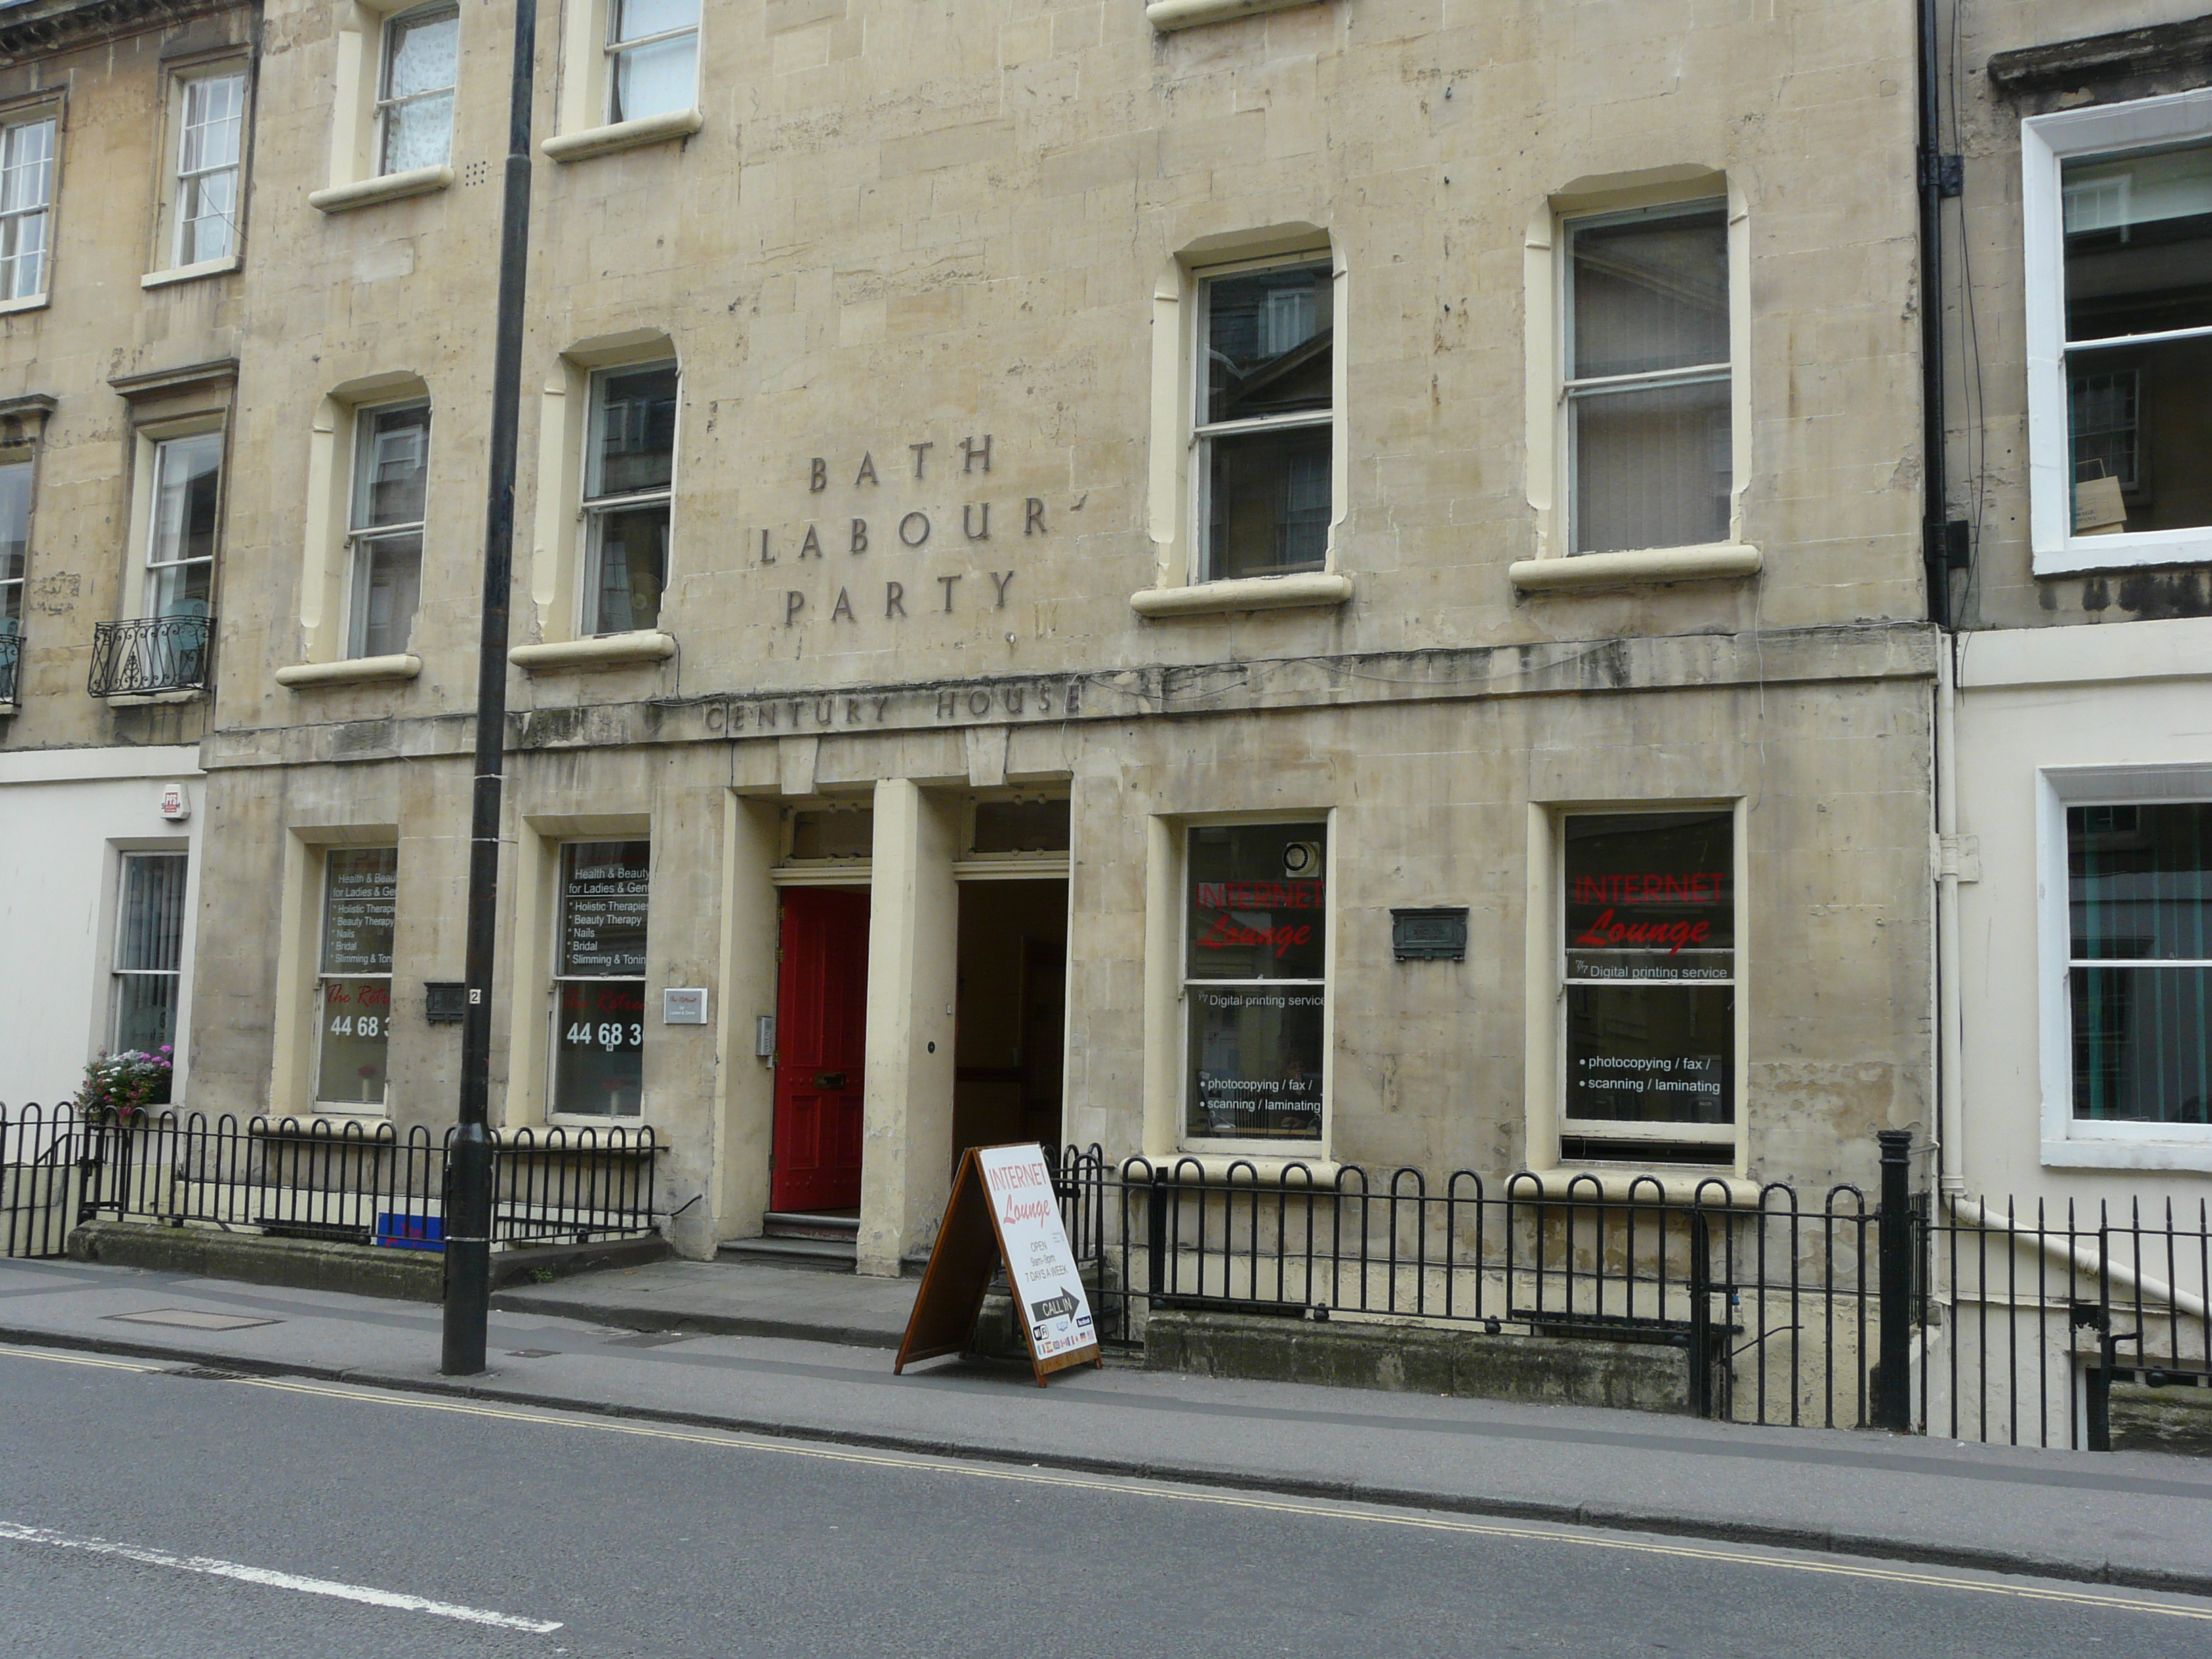 A stone building with a sign saying Bath Labour Party and railings in front of the basement